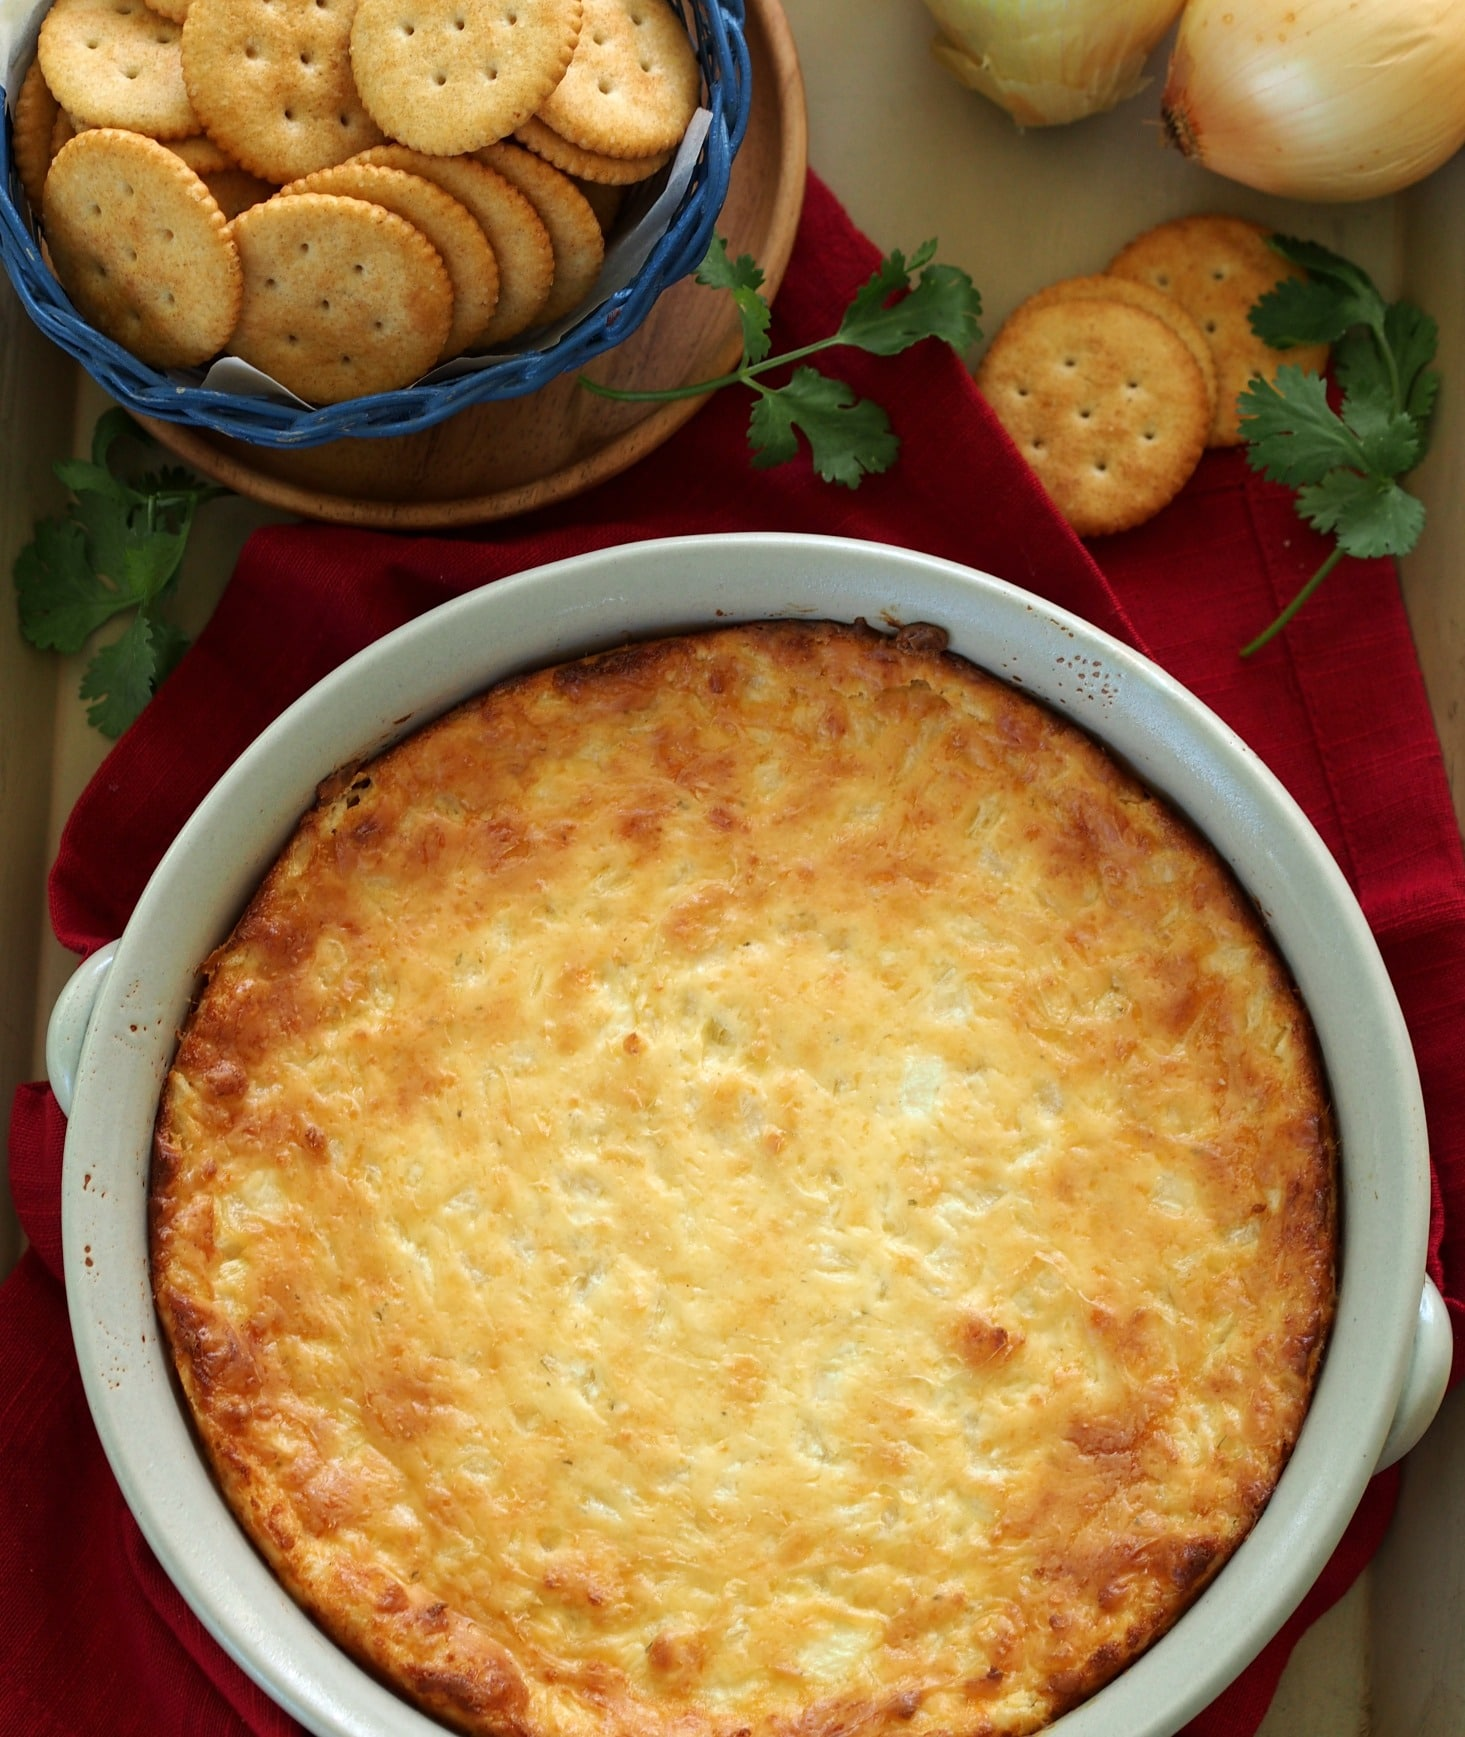 Hot Onion Dip with Boursin. The hot dip food gods decided to create the best dip ever, and this is the result.